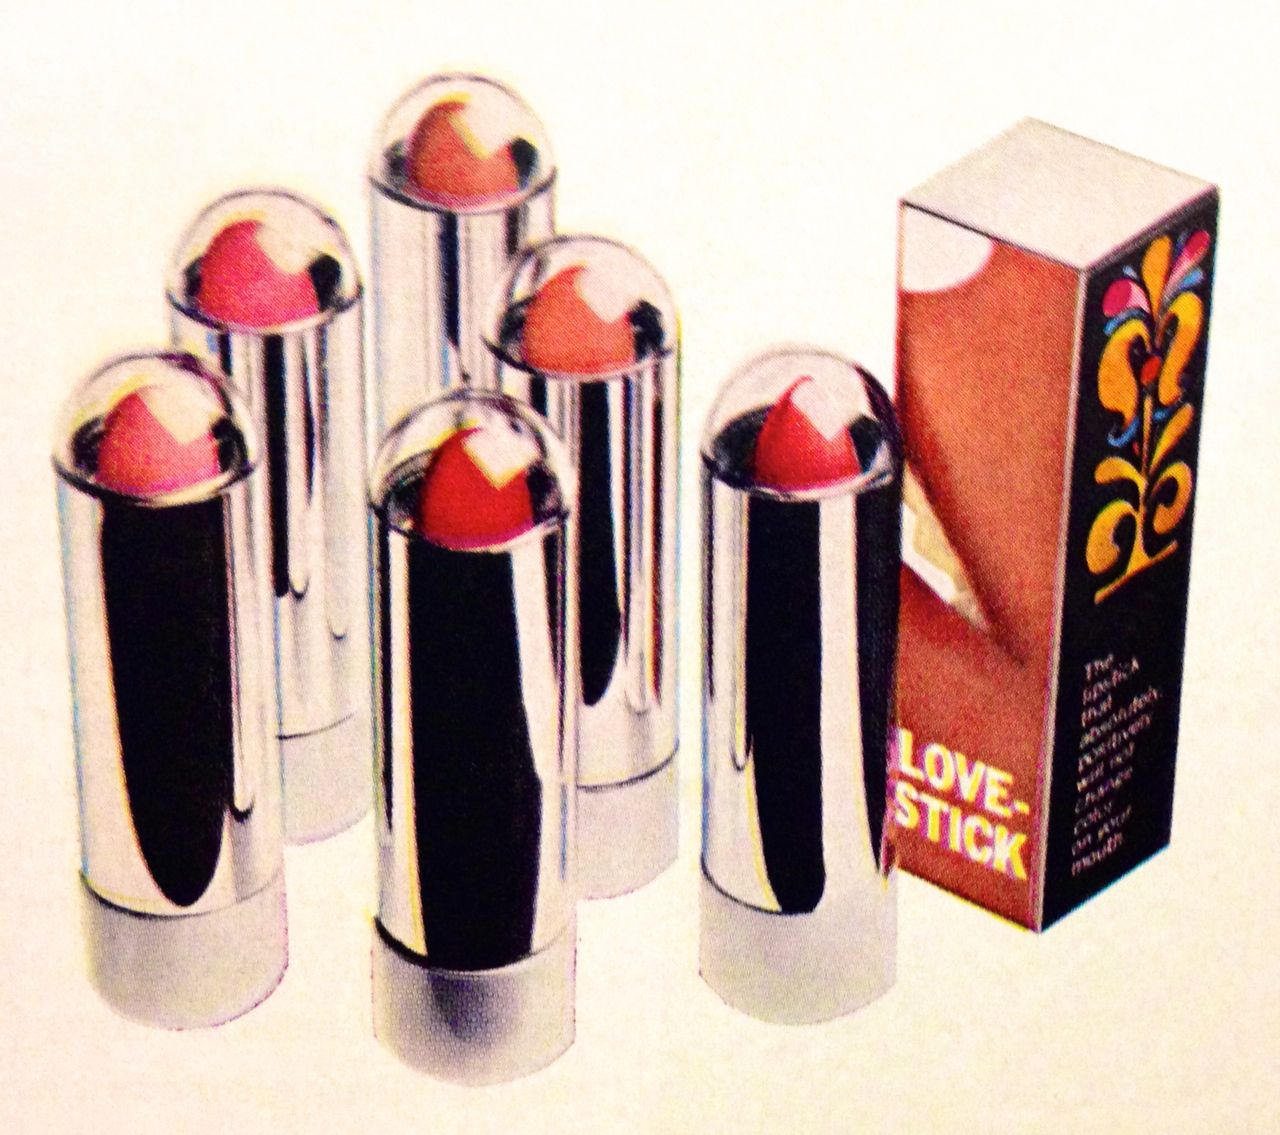 Love Cosmetics 'Sunlit Lovestick' Lipstick by Menley